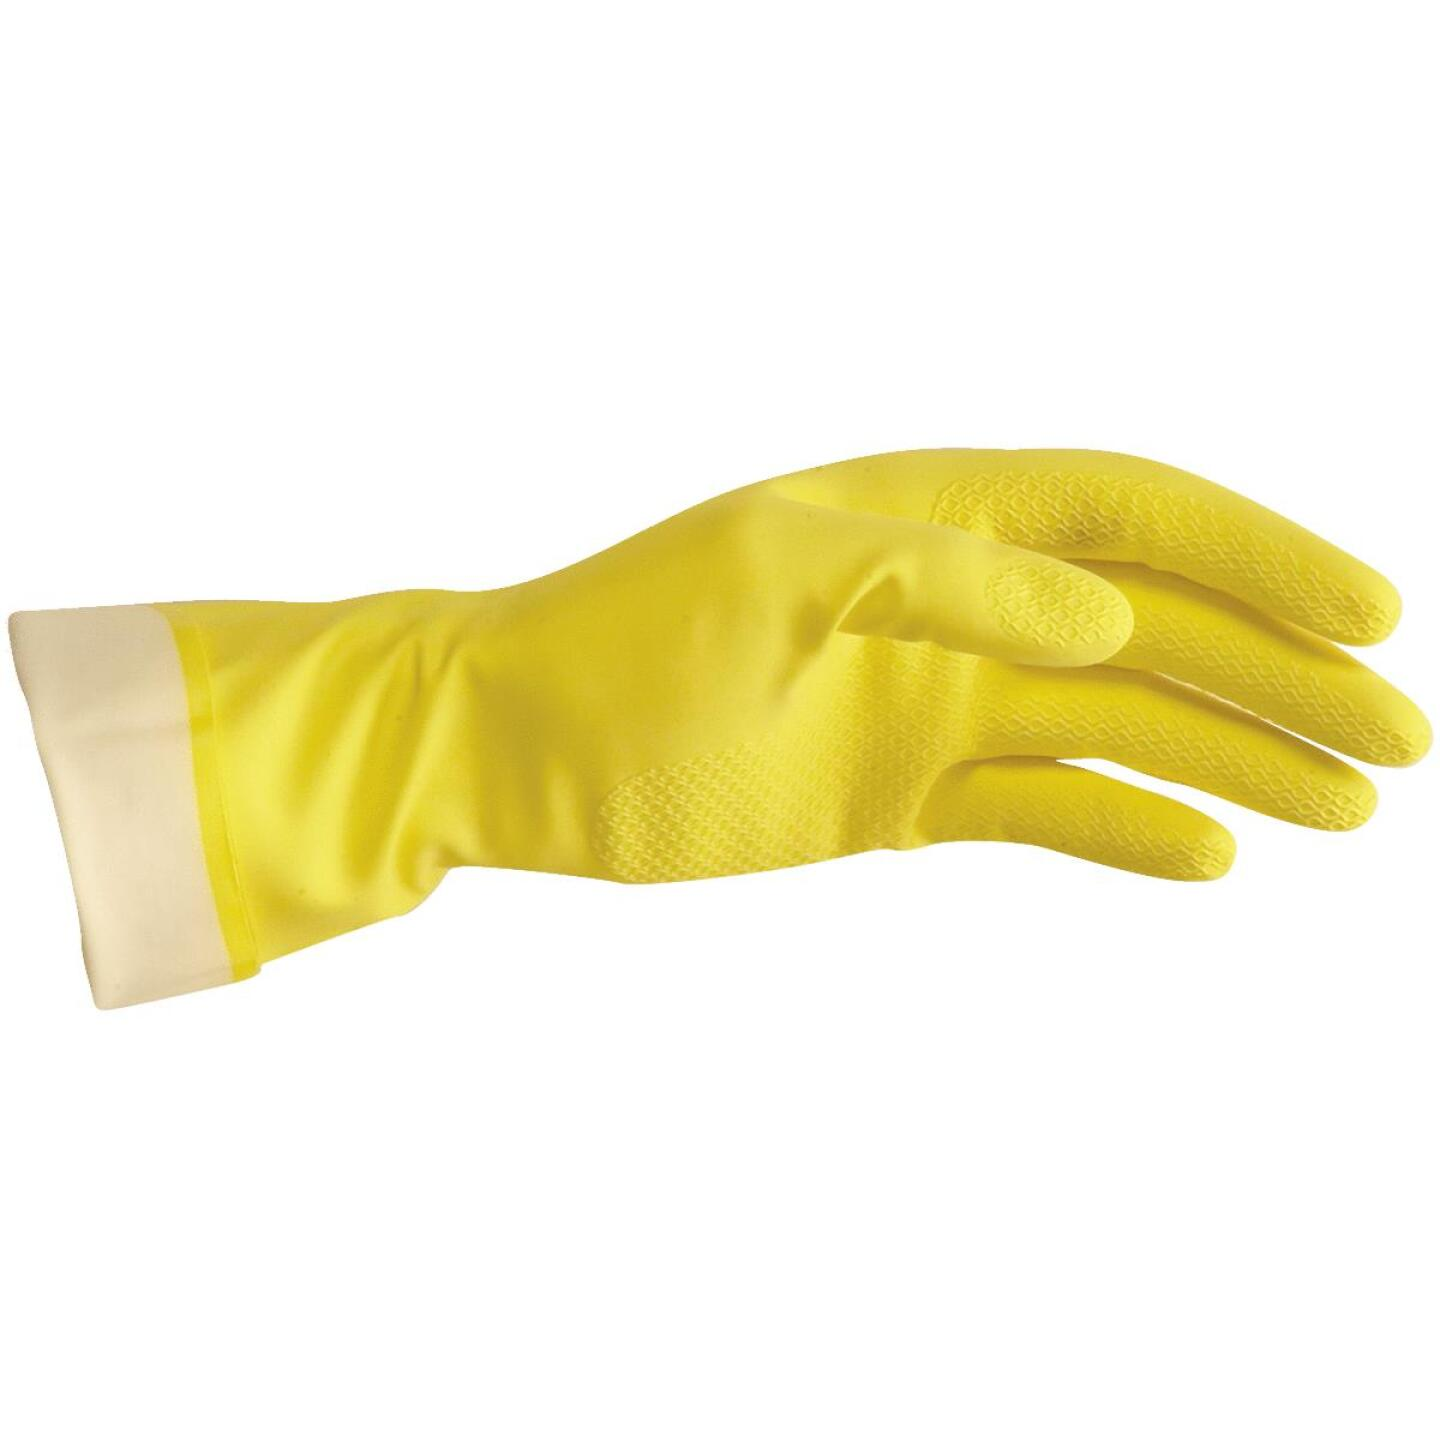 Do it Large Latex Rubber Glove Image 4